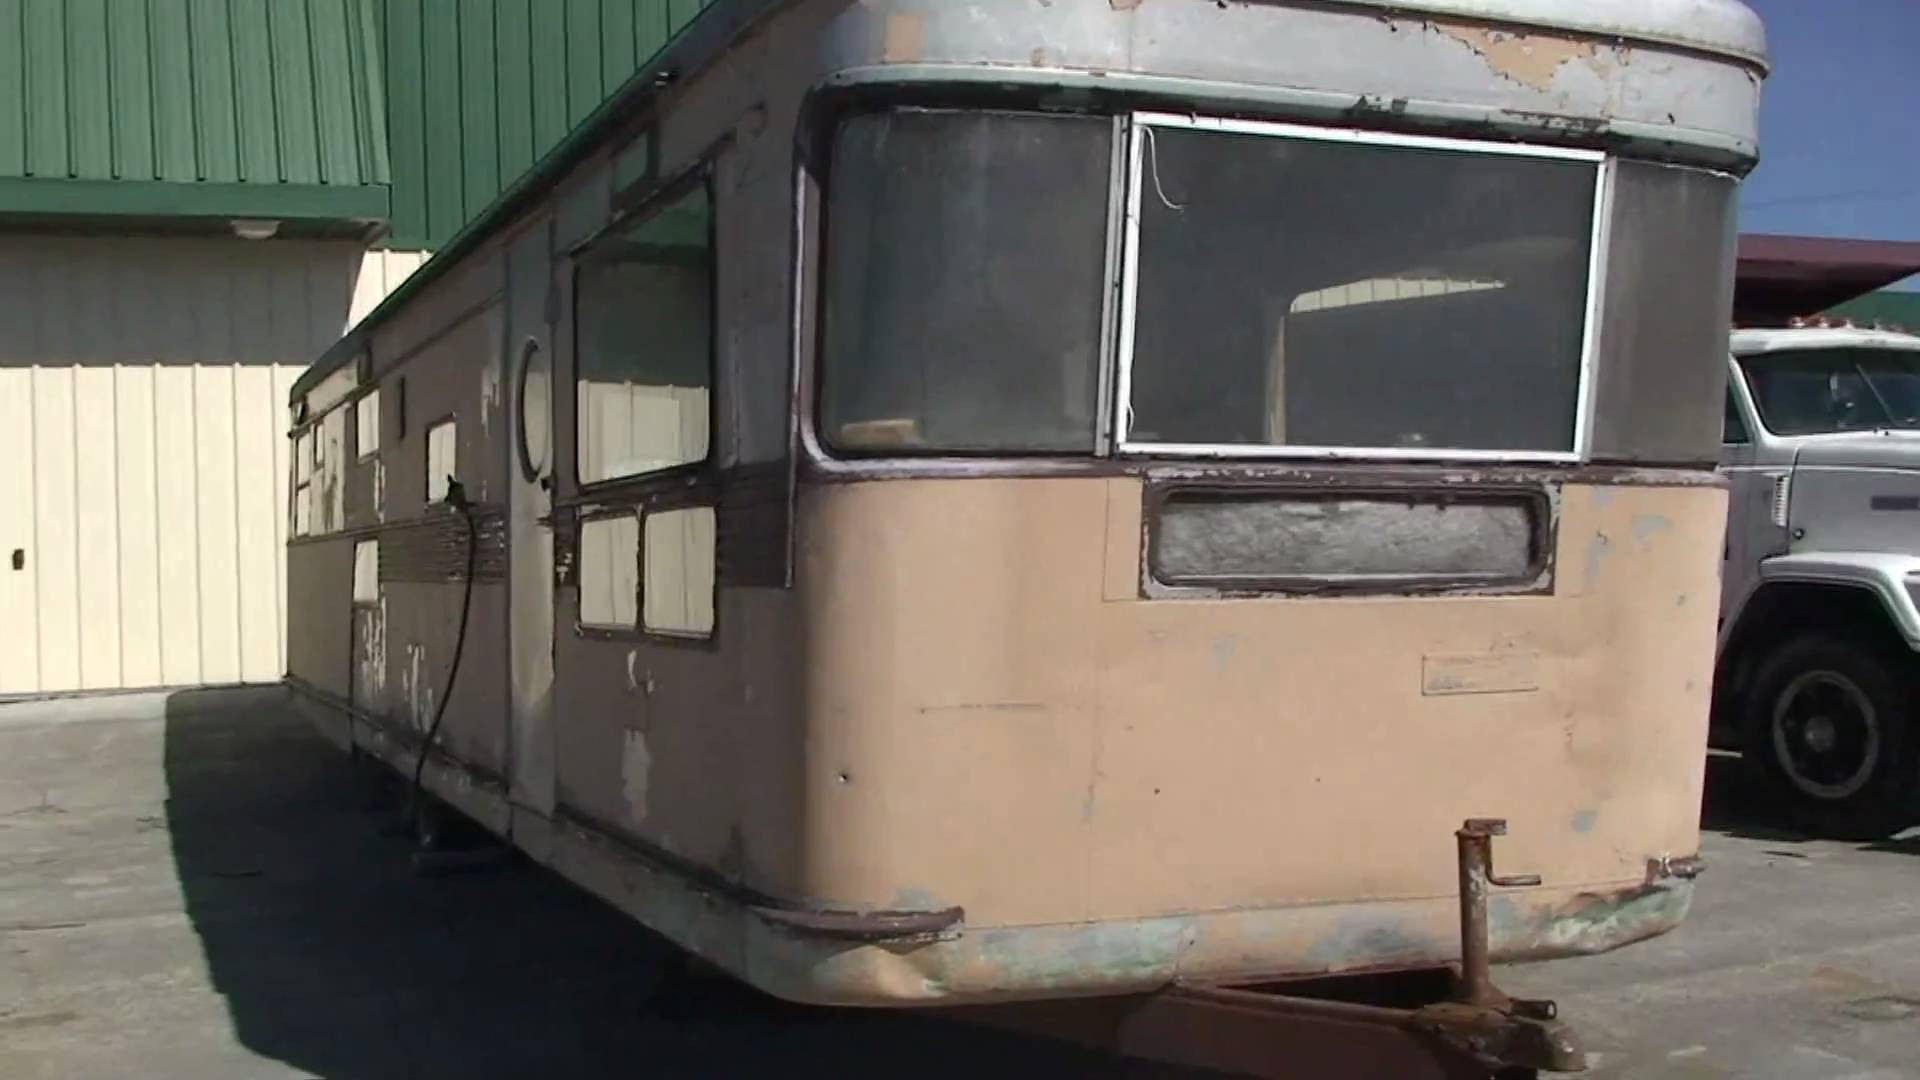 VERY OLD ANTIQUE SPARTAN TRAVEL TRAILER FROM THE 50'S IN WEST ...